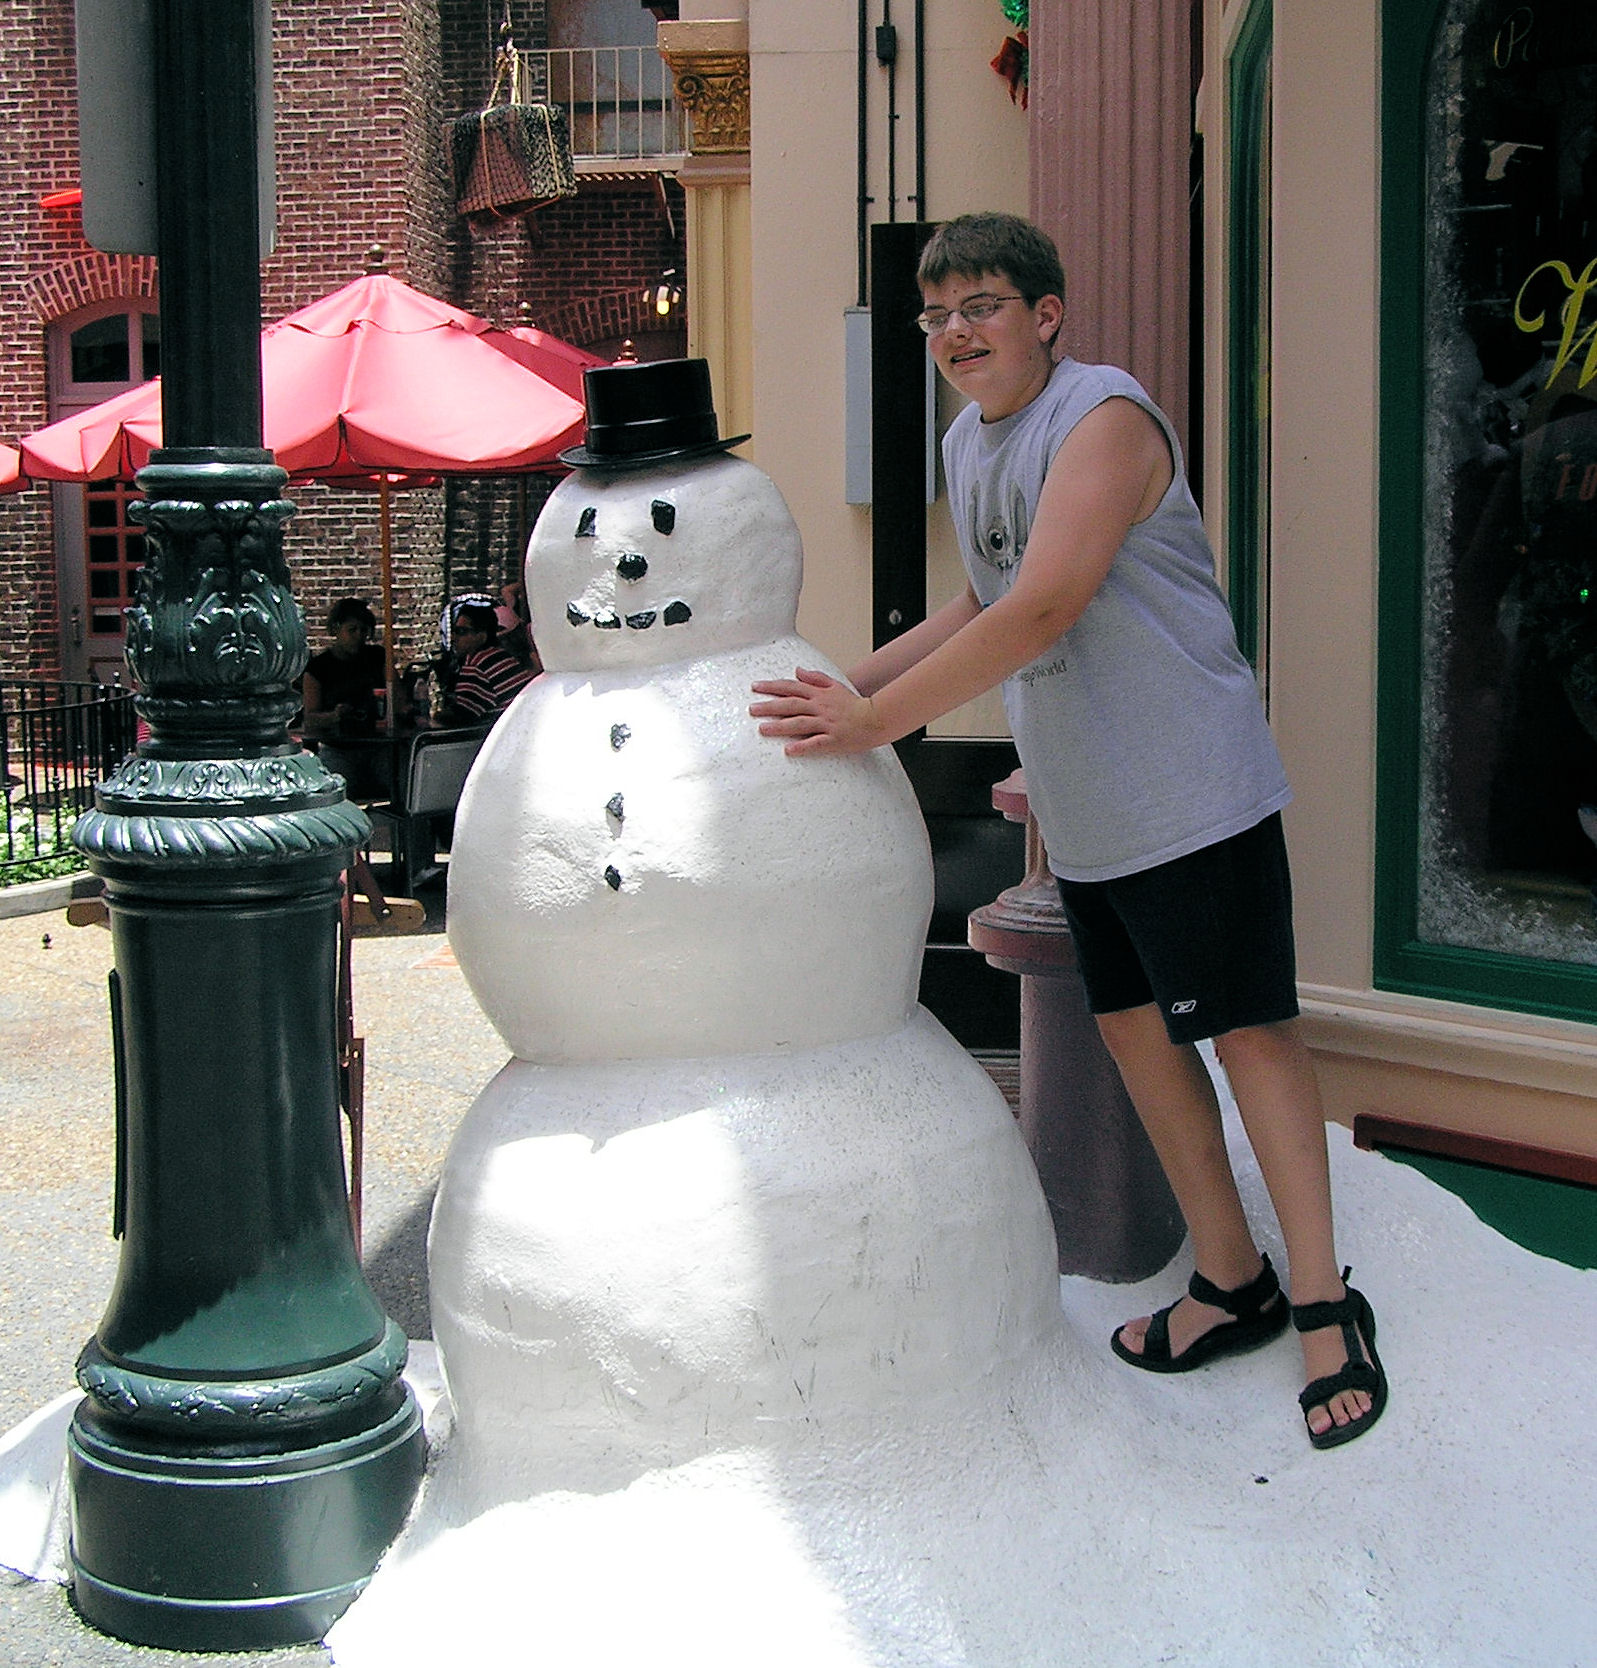 That snowman must be melting because in relation to me he keeps getting shorter over the years.